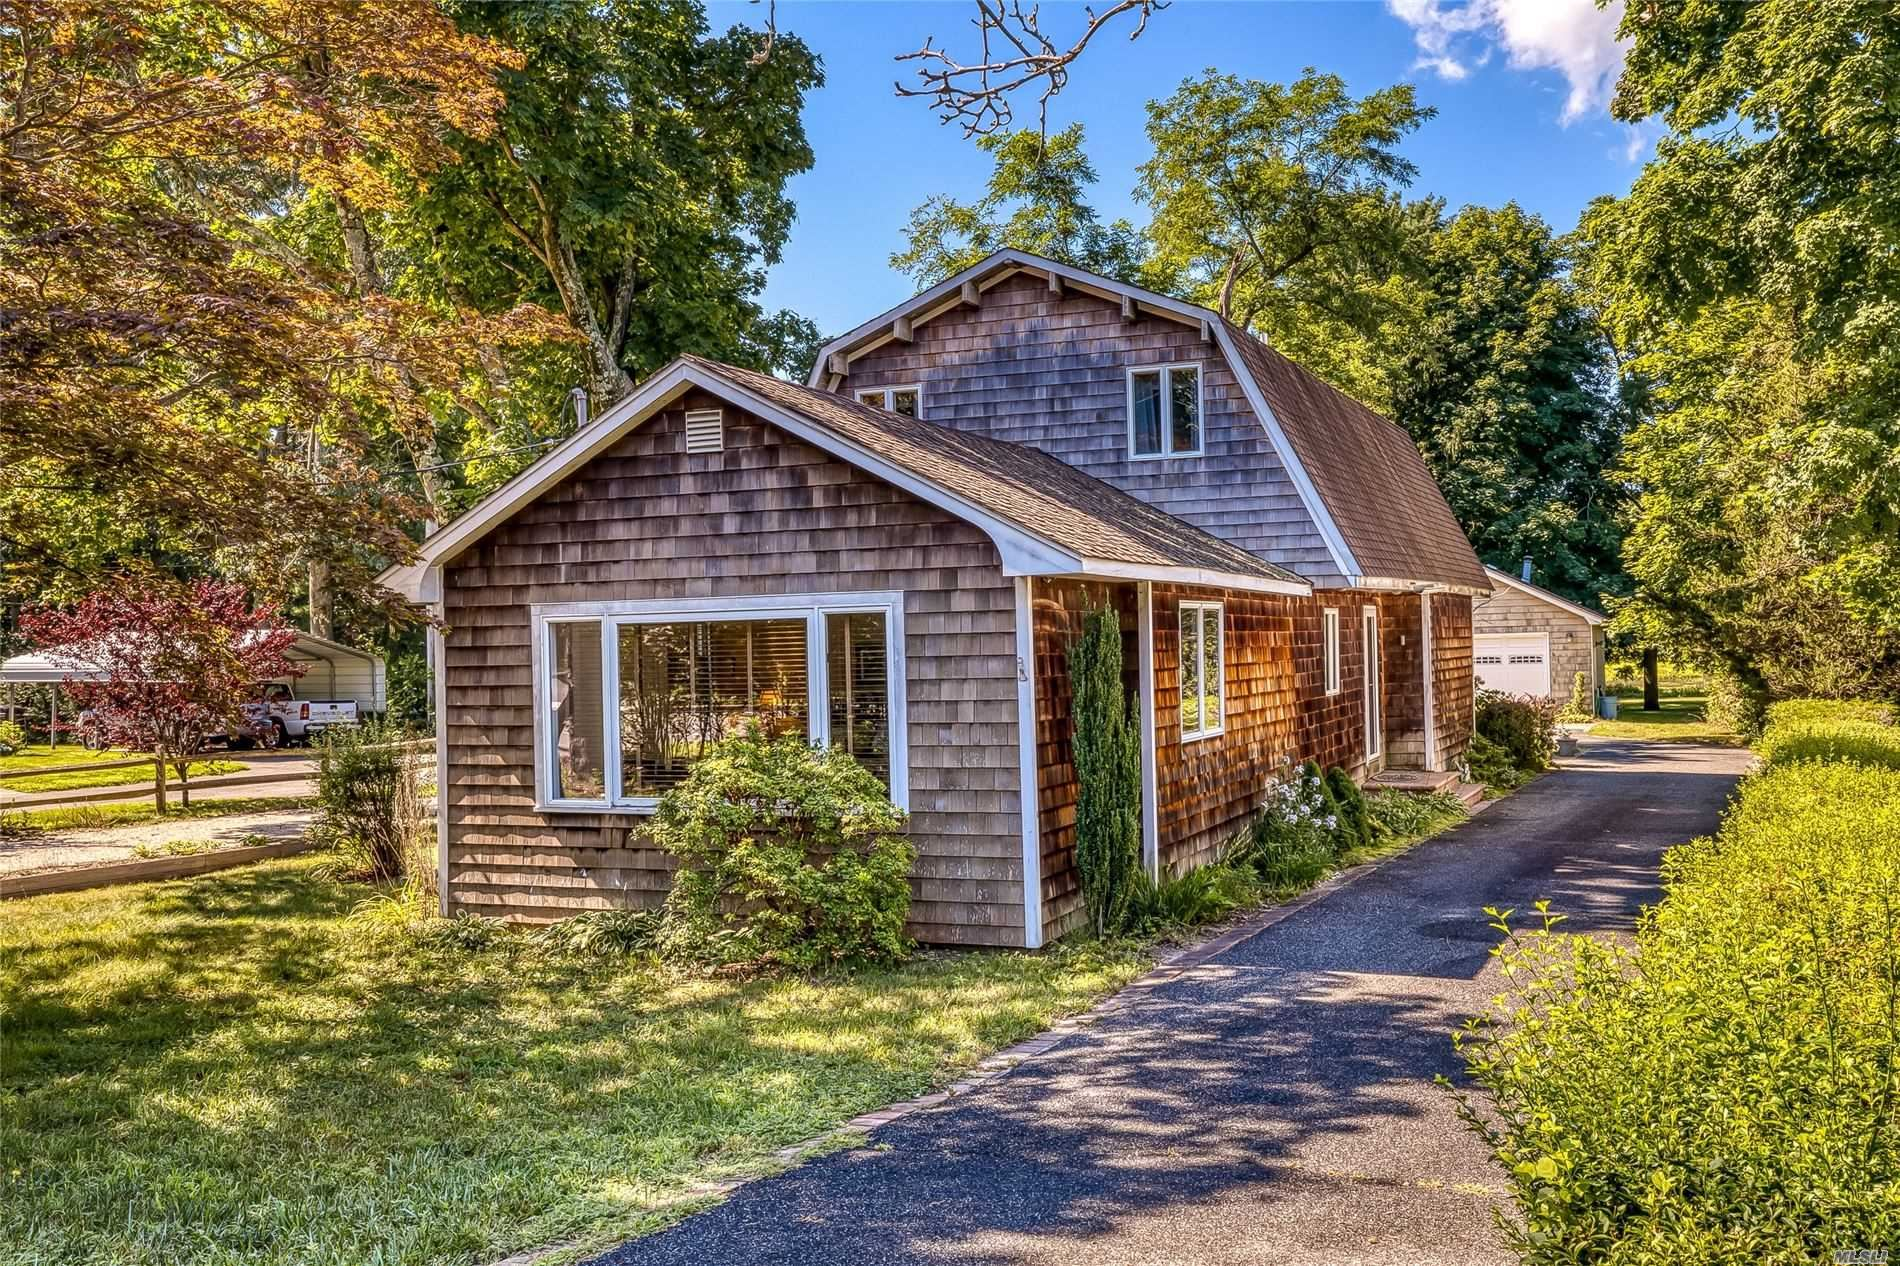 146 Main St, Yaphank, NY 11980 - MLS#: 3241030